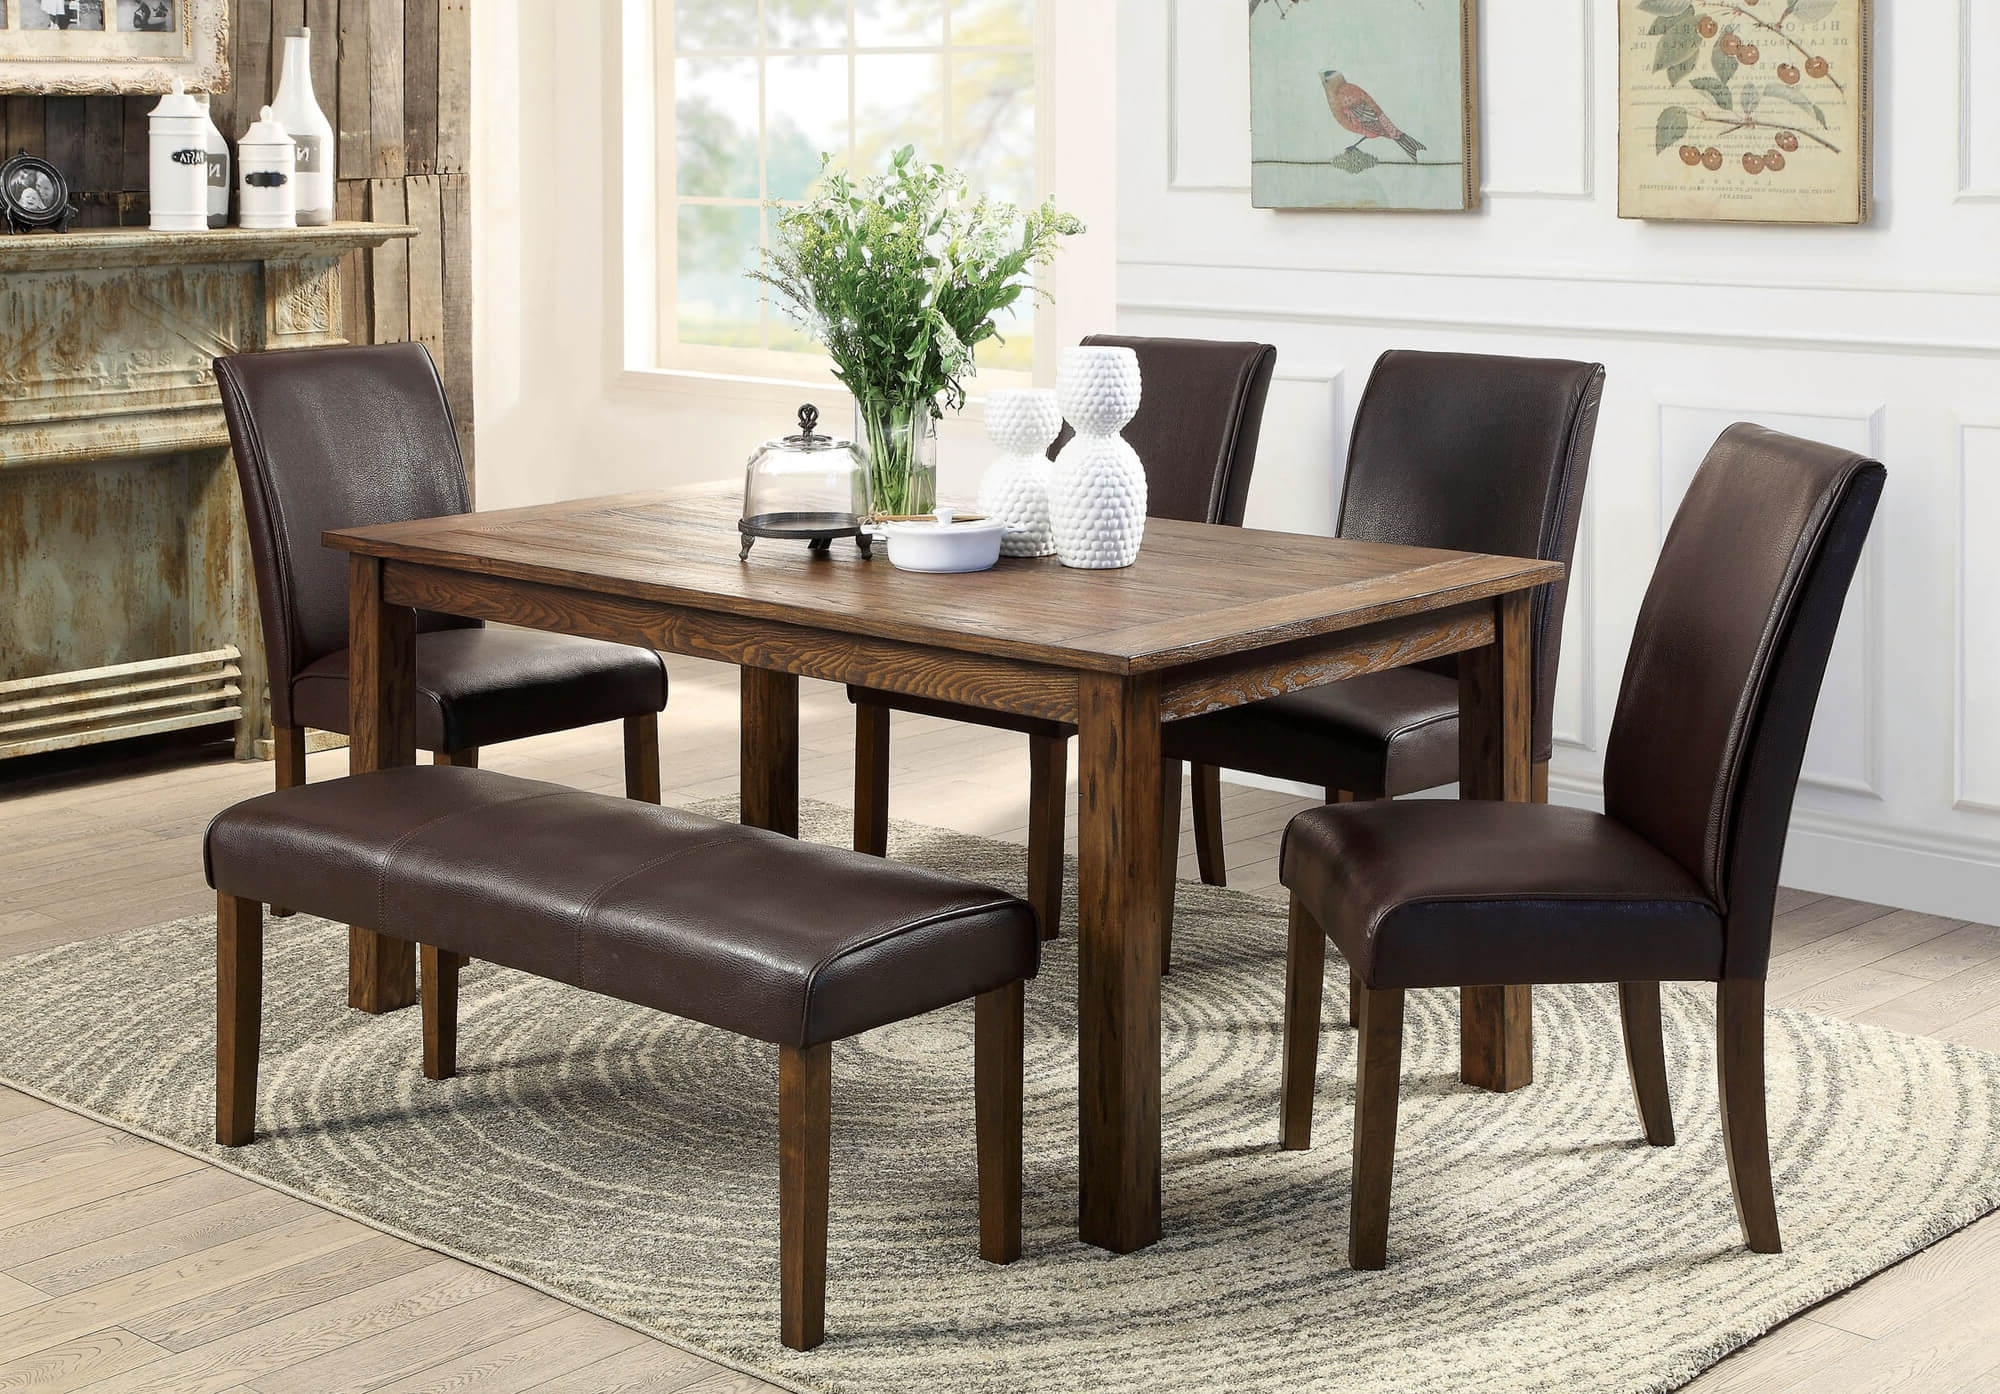 Favorite Indoor Picnic Style Dining Tables Inside 26 Dining Room Sets (Big And Small) With Bench Seating (2018) (View 20 of 25)